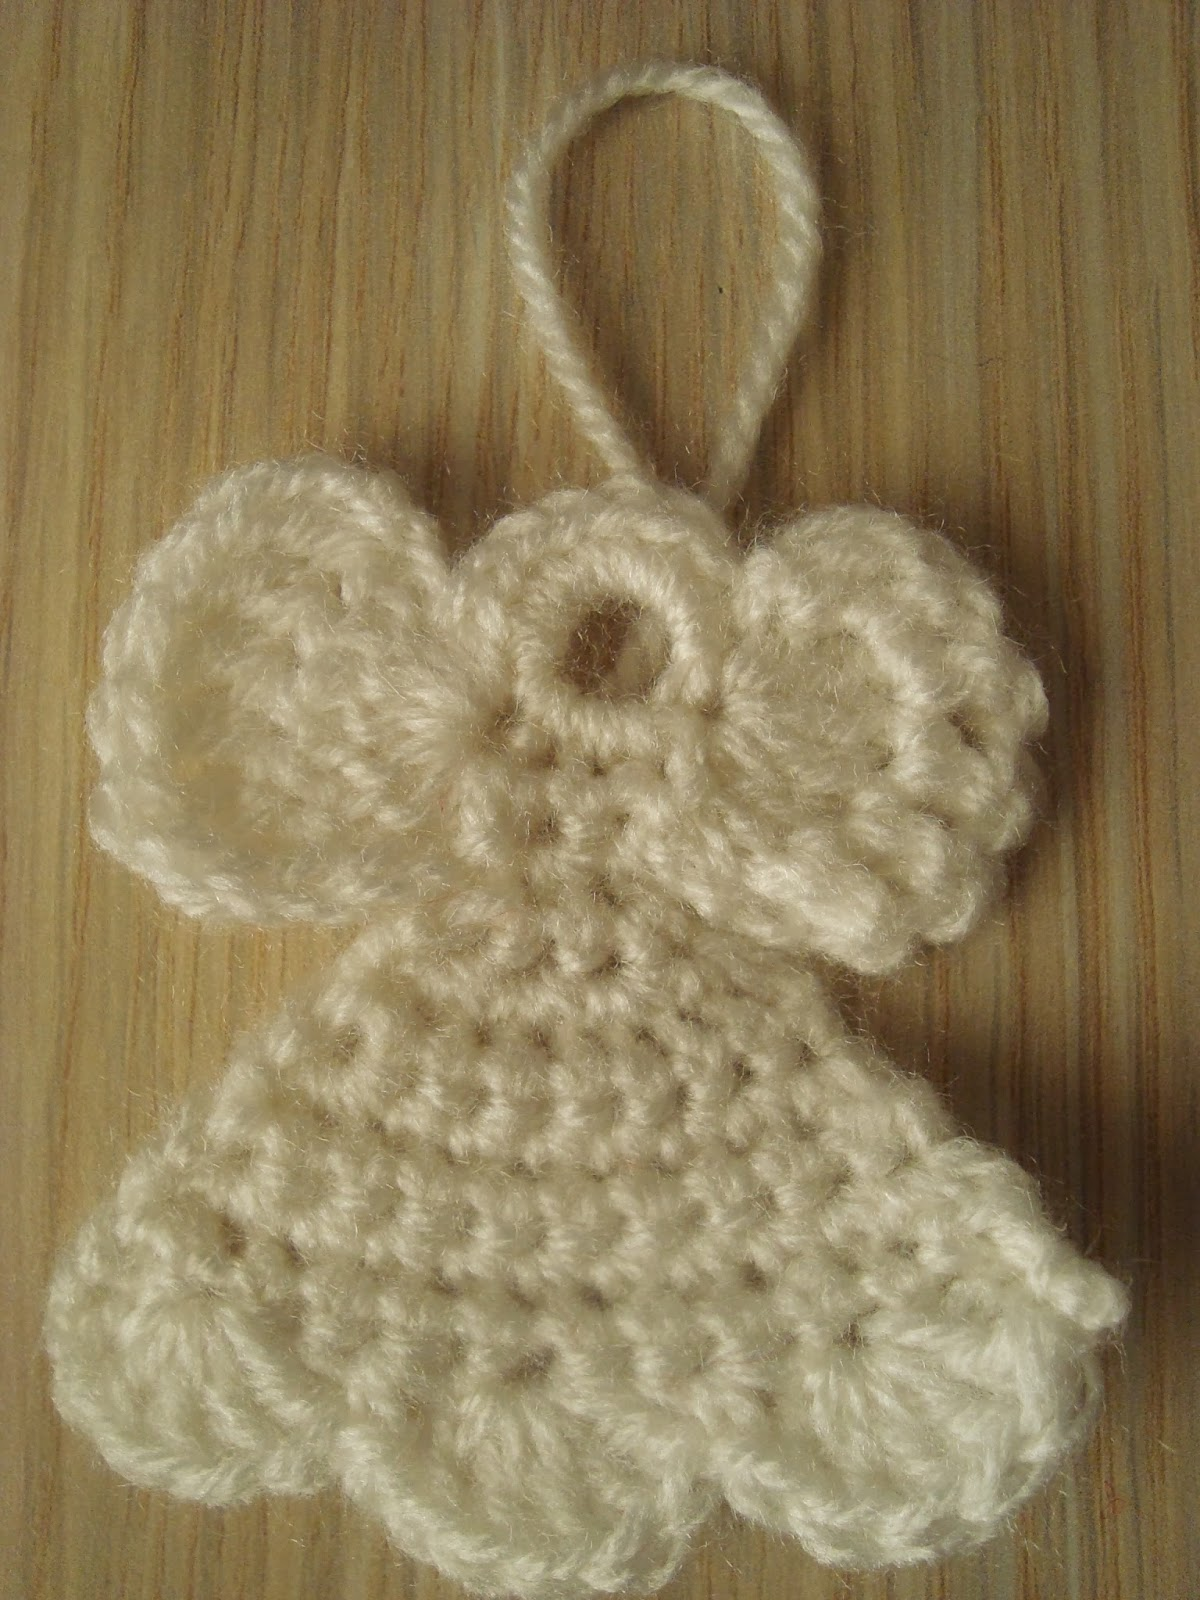 Easy Free Crochet Angel Pattern : Handmade by Camelia: Pattern: Three Ornaments Crocheted ...